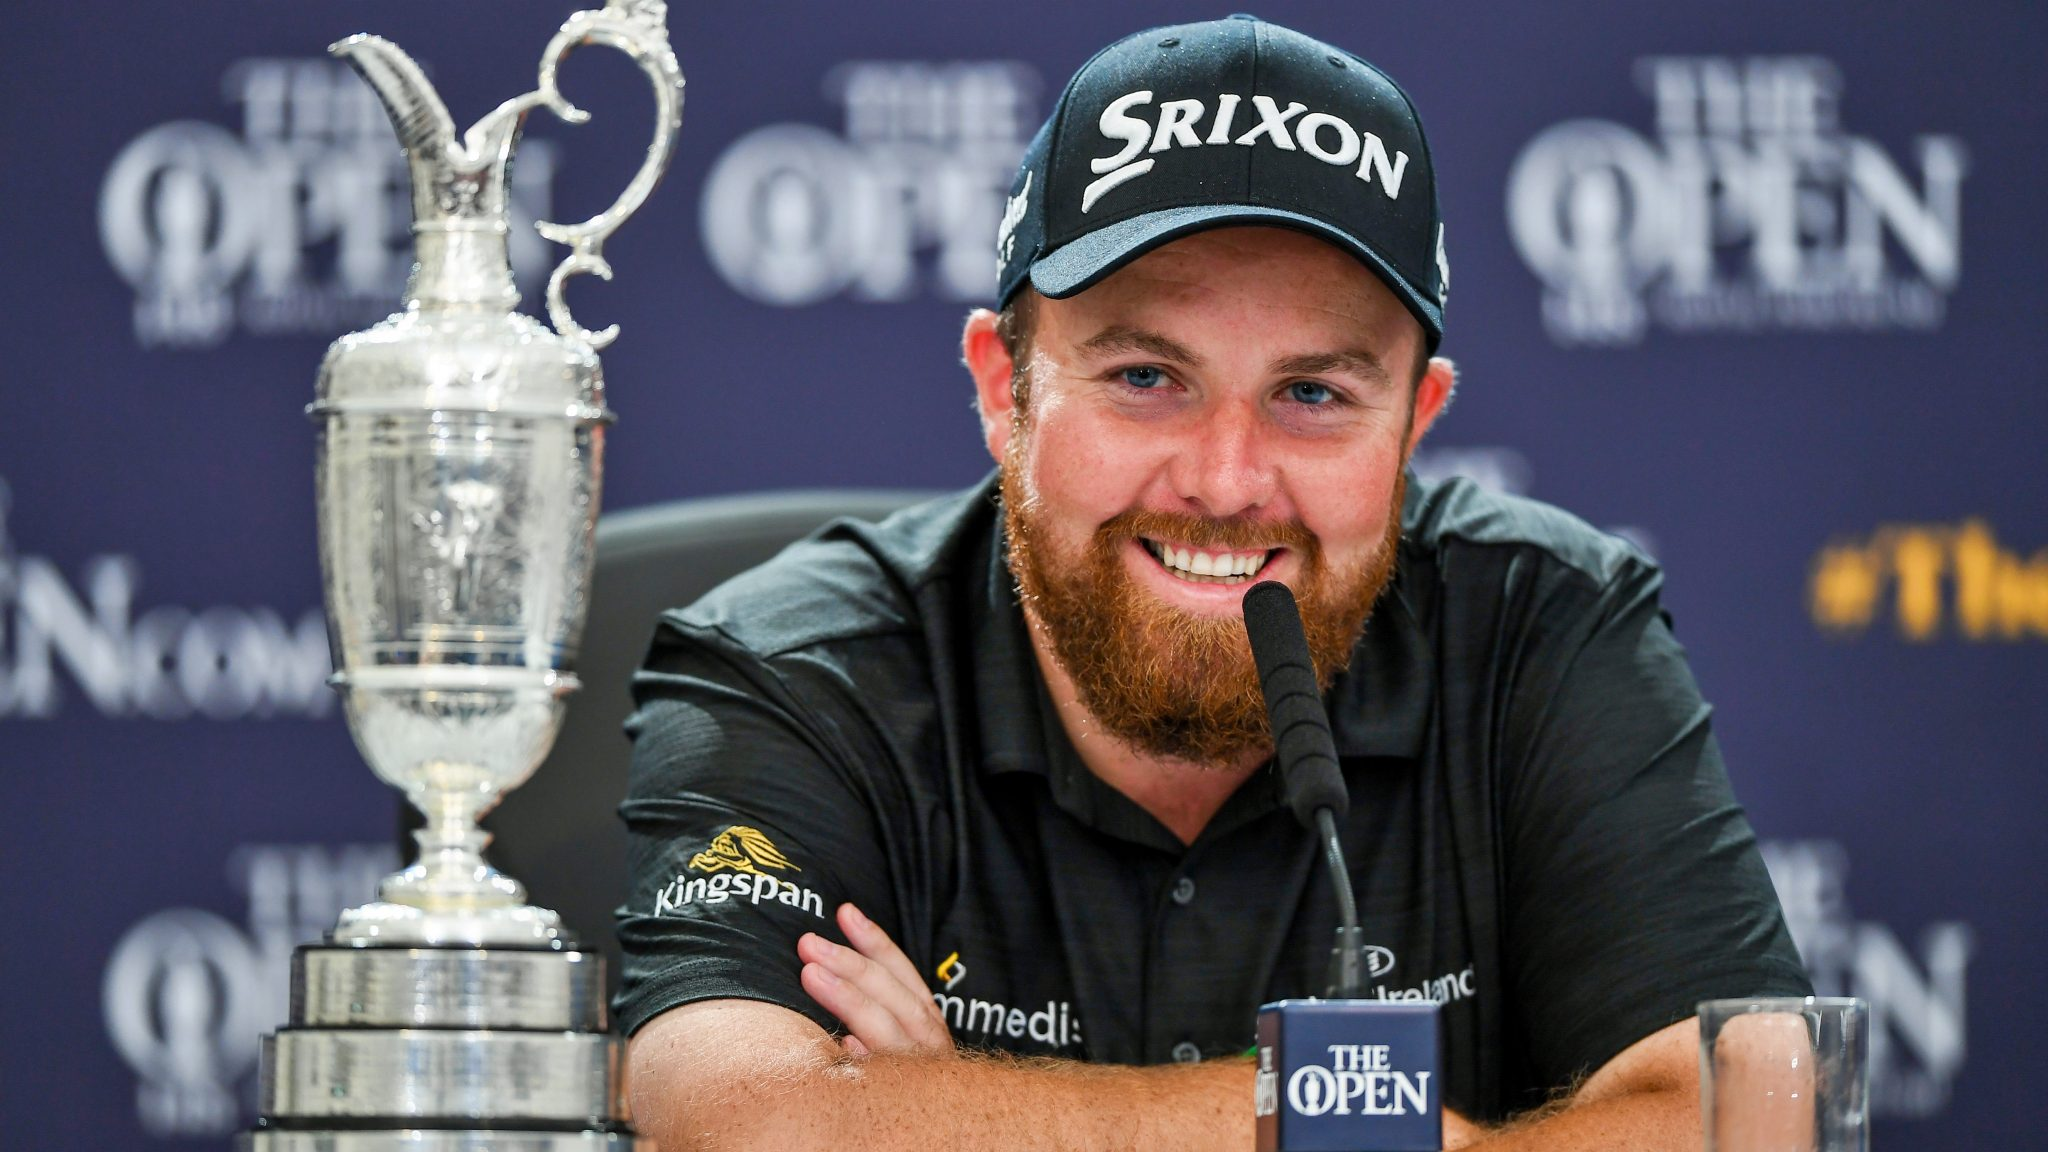 Historic Irish pub 'honoured' to host Shane Lowry's Open Championship celebrations